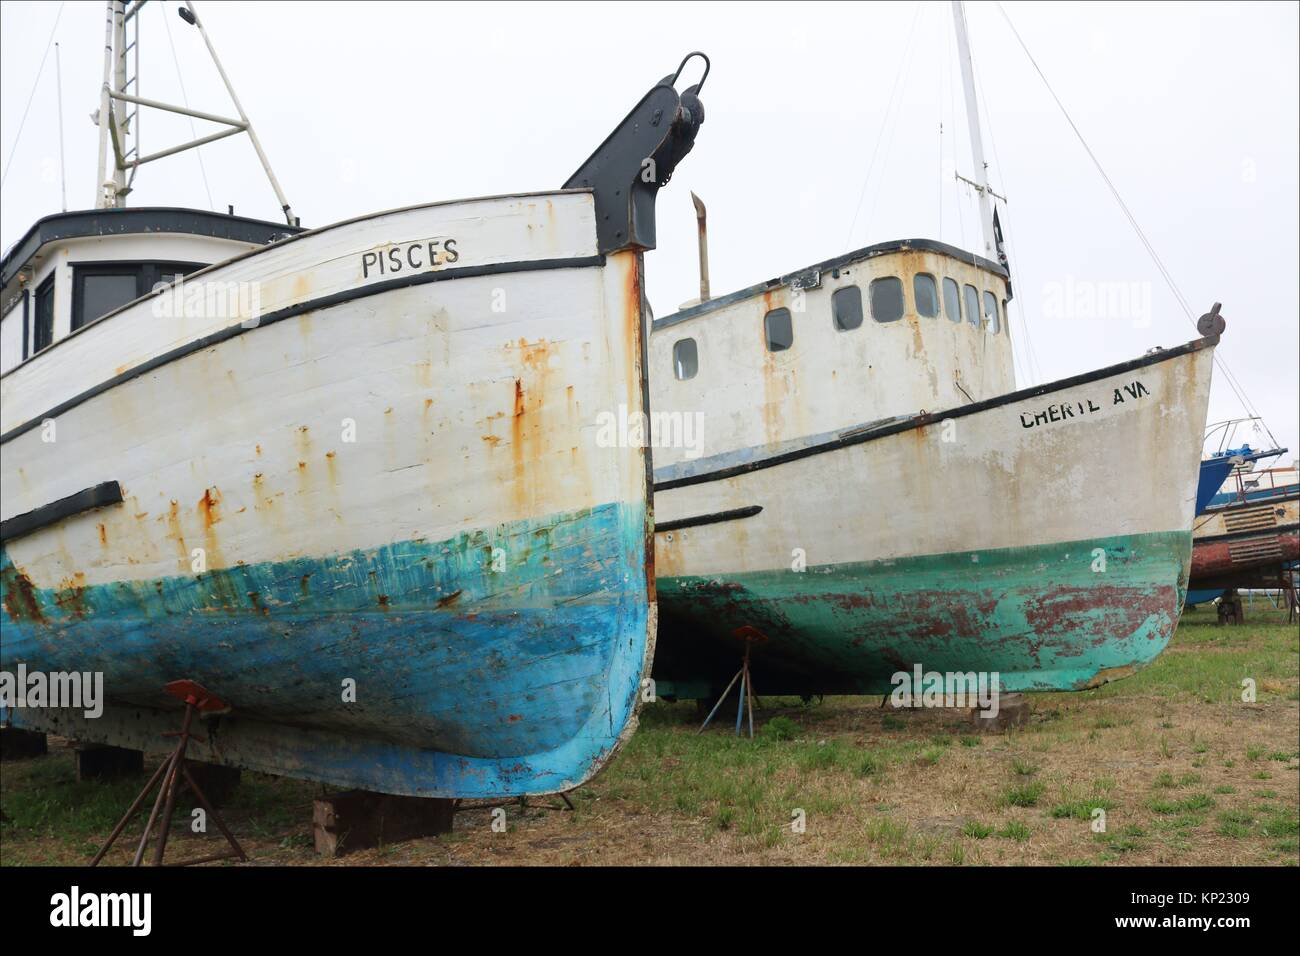 Old weathered boats have seen better days in Crescent City, California. USA - Stock Image